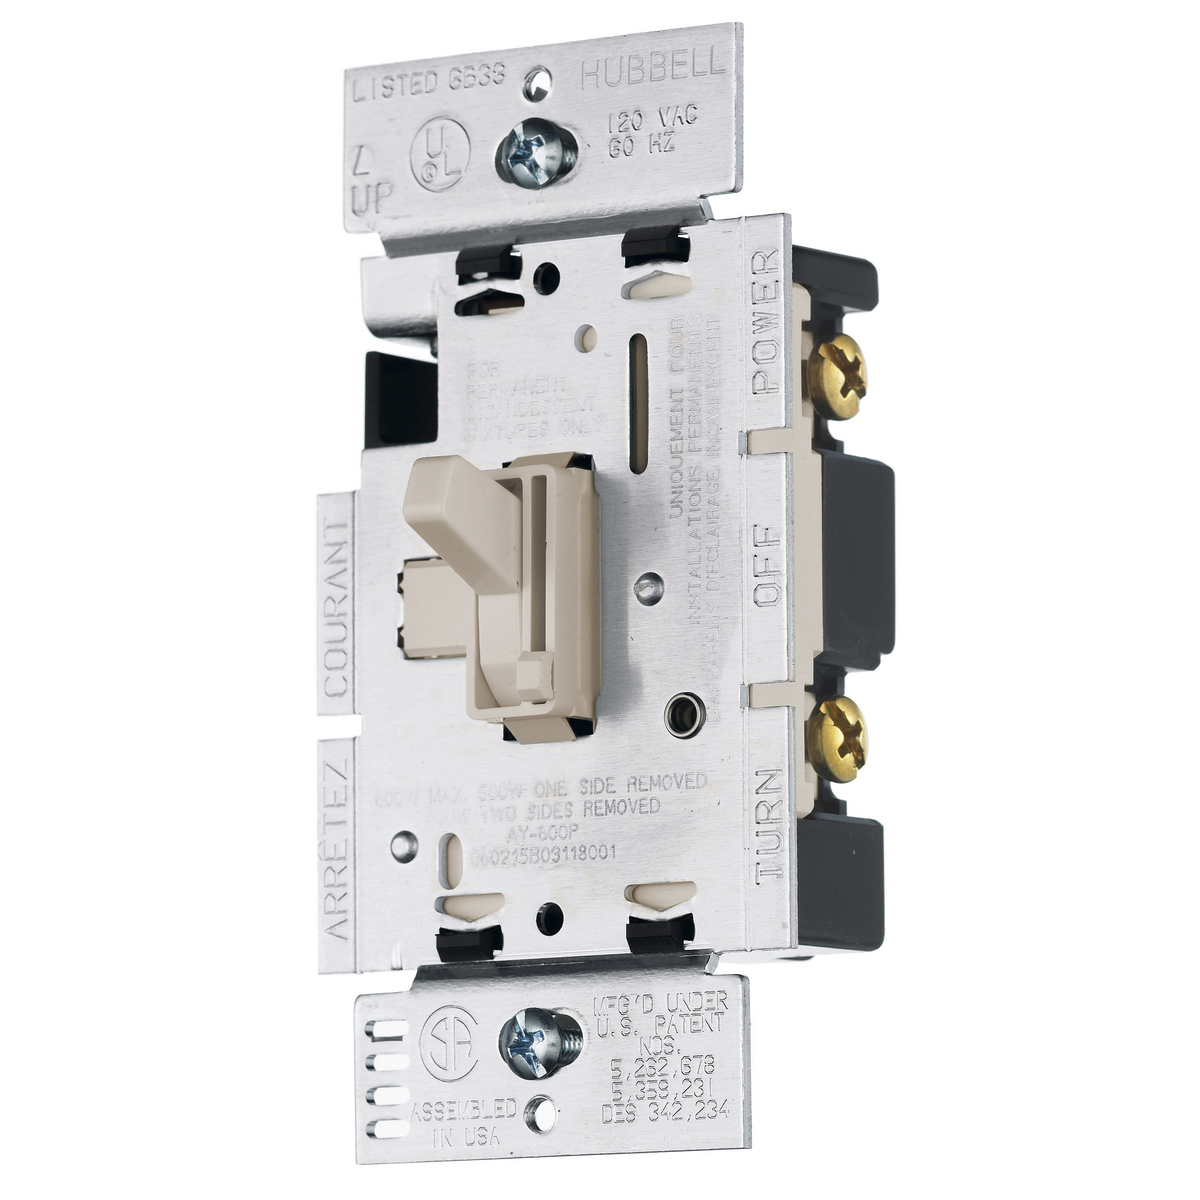 rayfsqfla dimmers fan speed controls residential devices rh hubbell com Receptacle Wiring Electrical Wiring Diagrams For Dummies